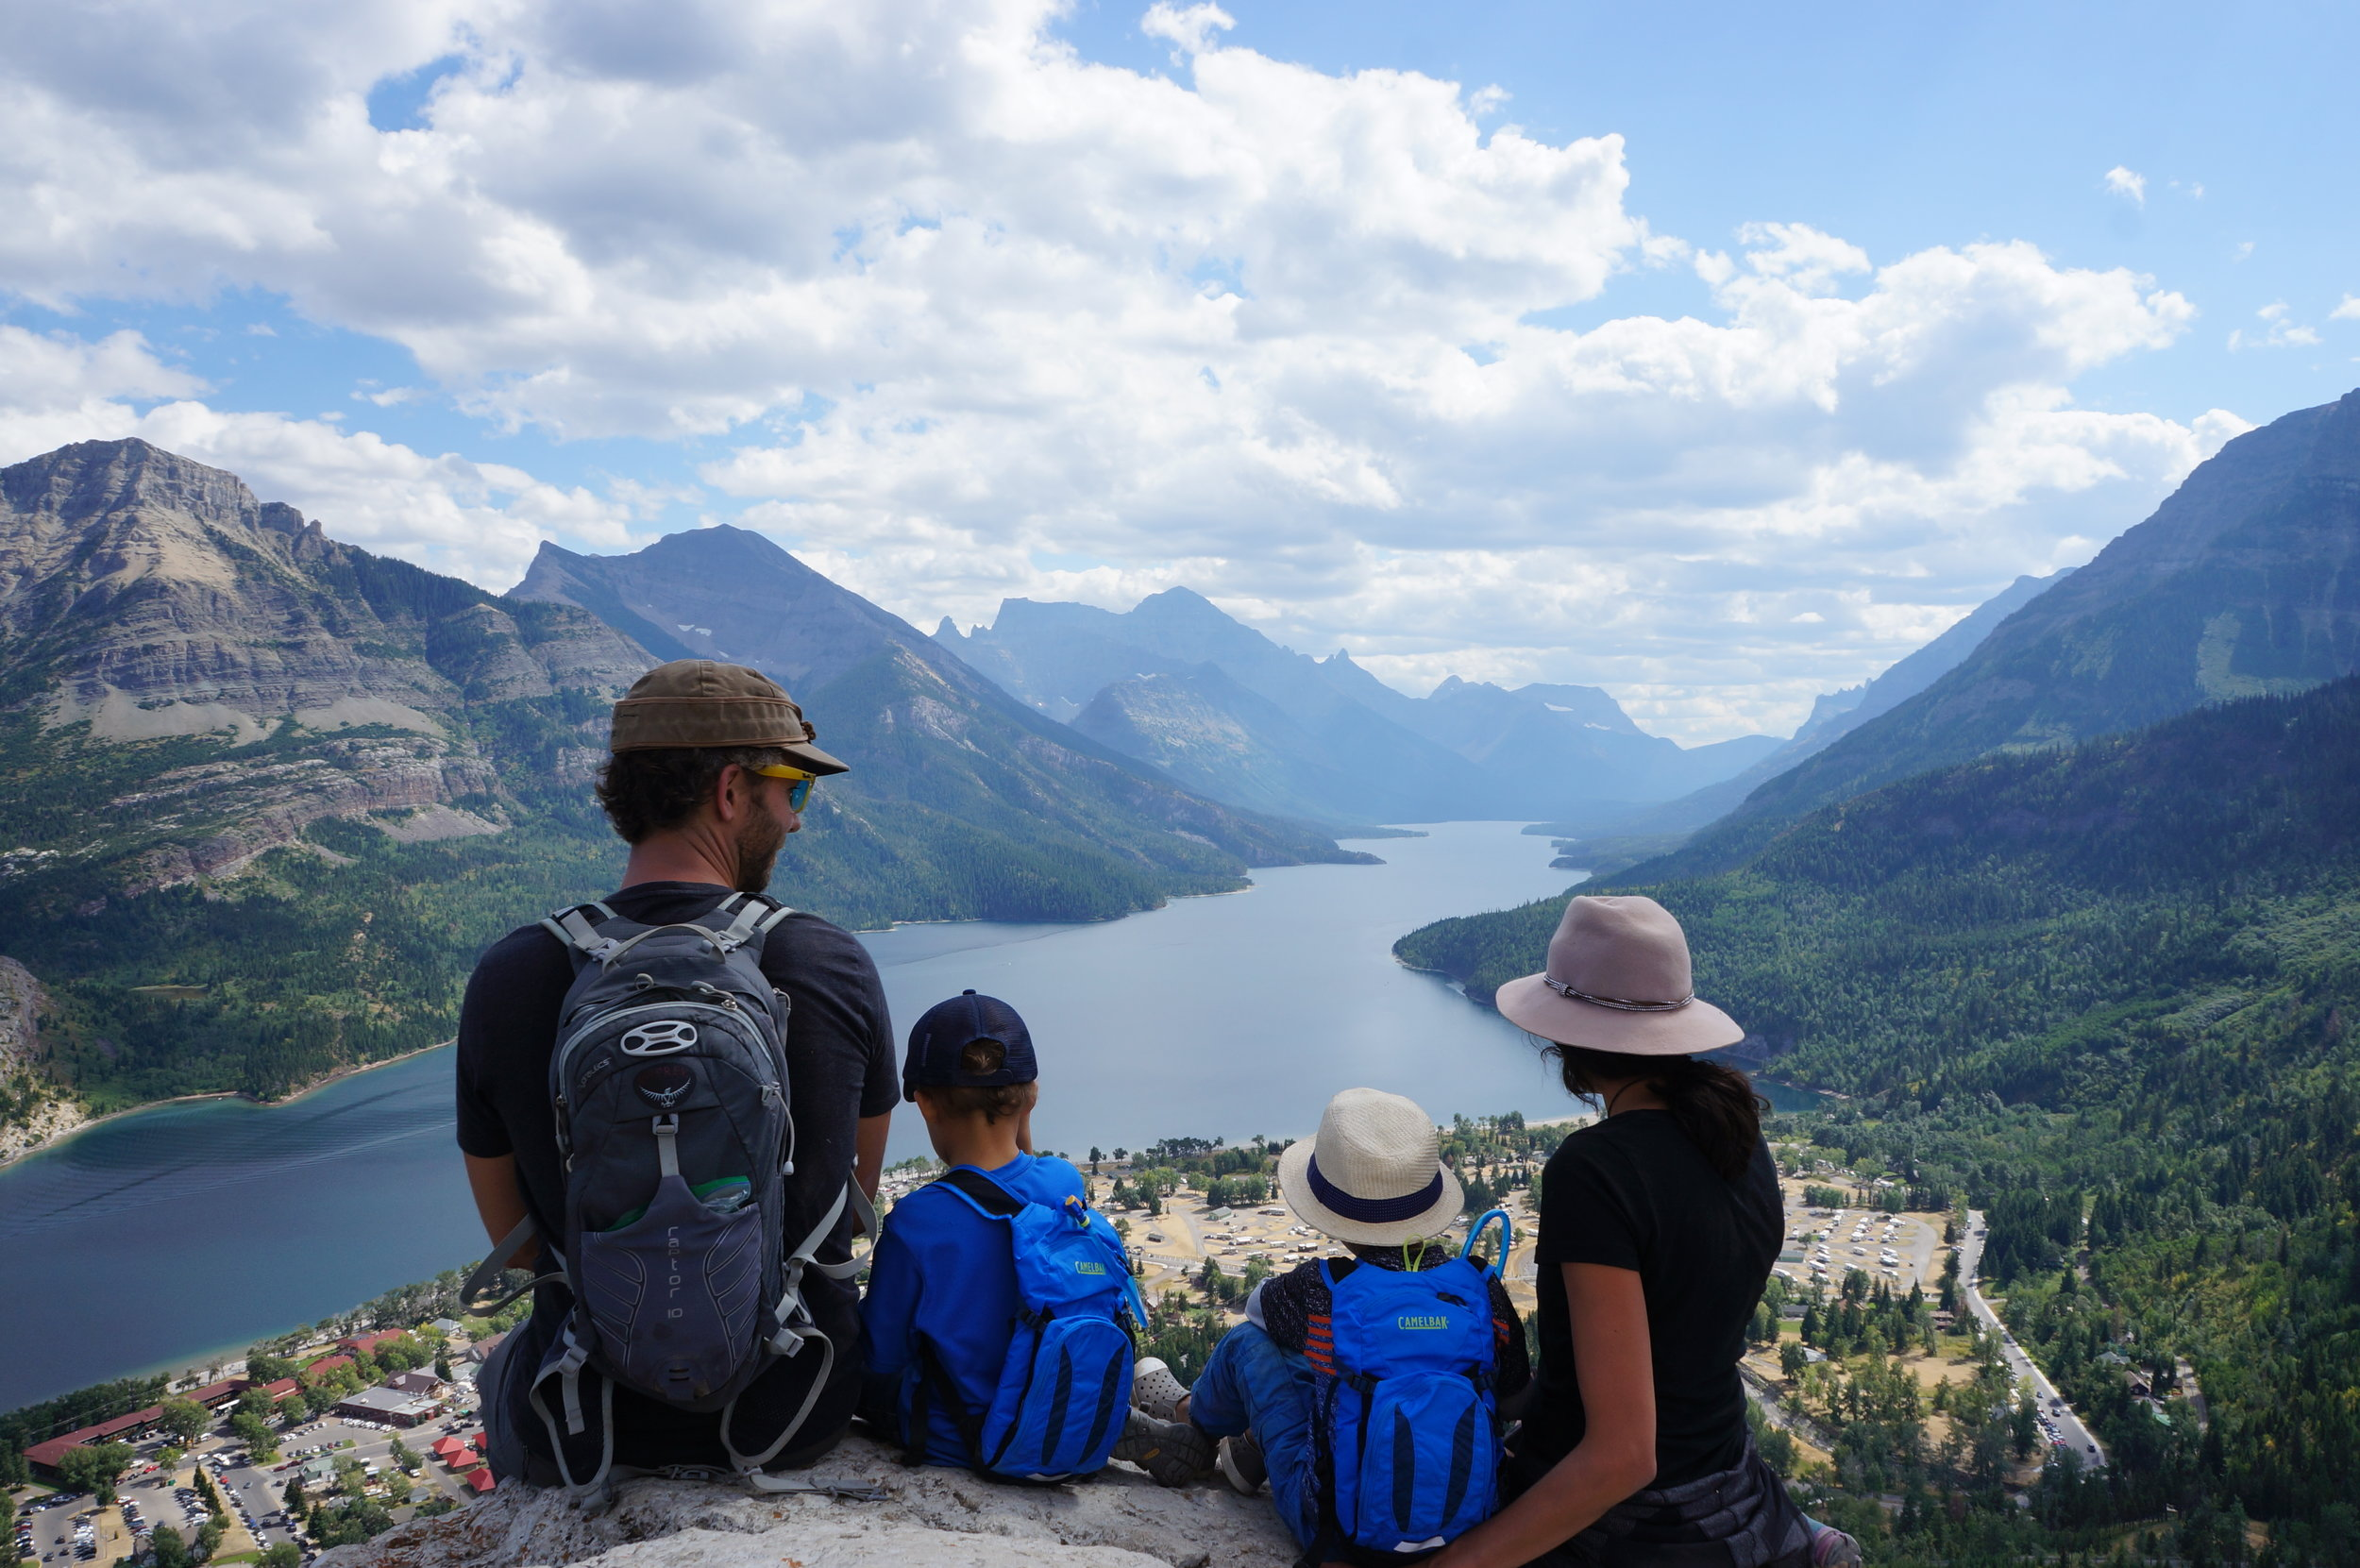 View of Waterton Lake from the top (the small town below).